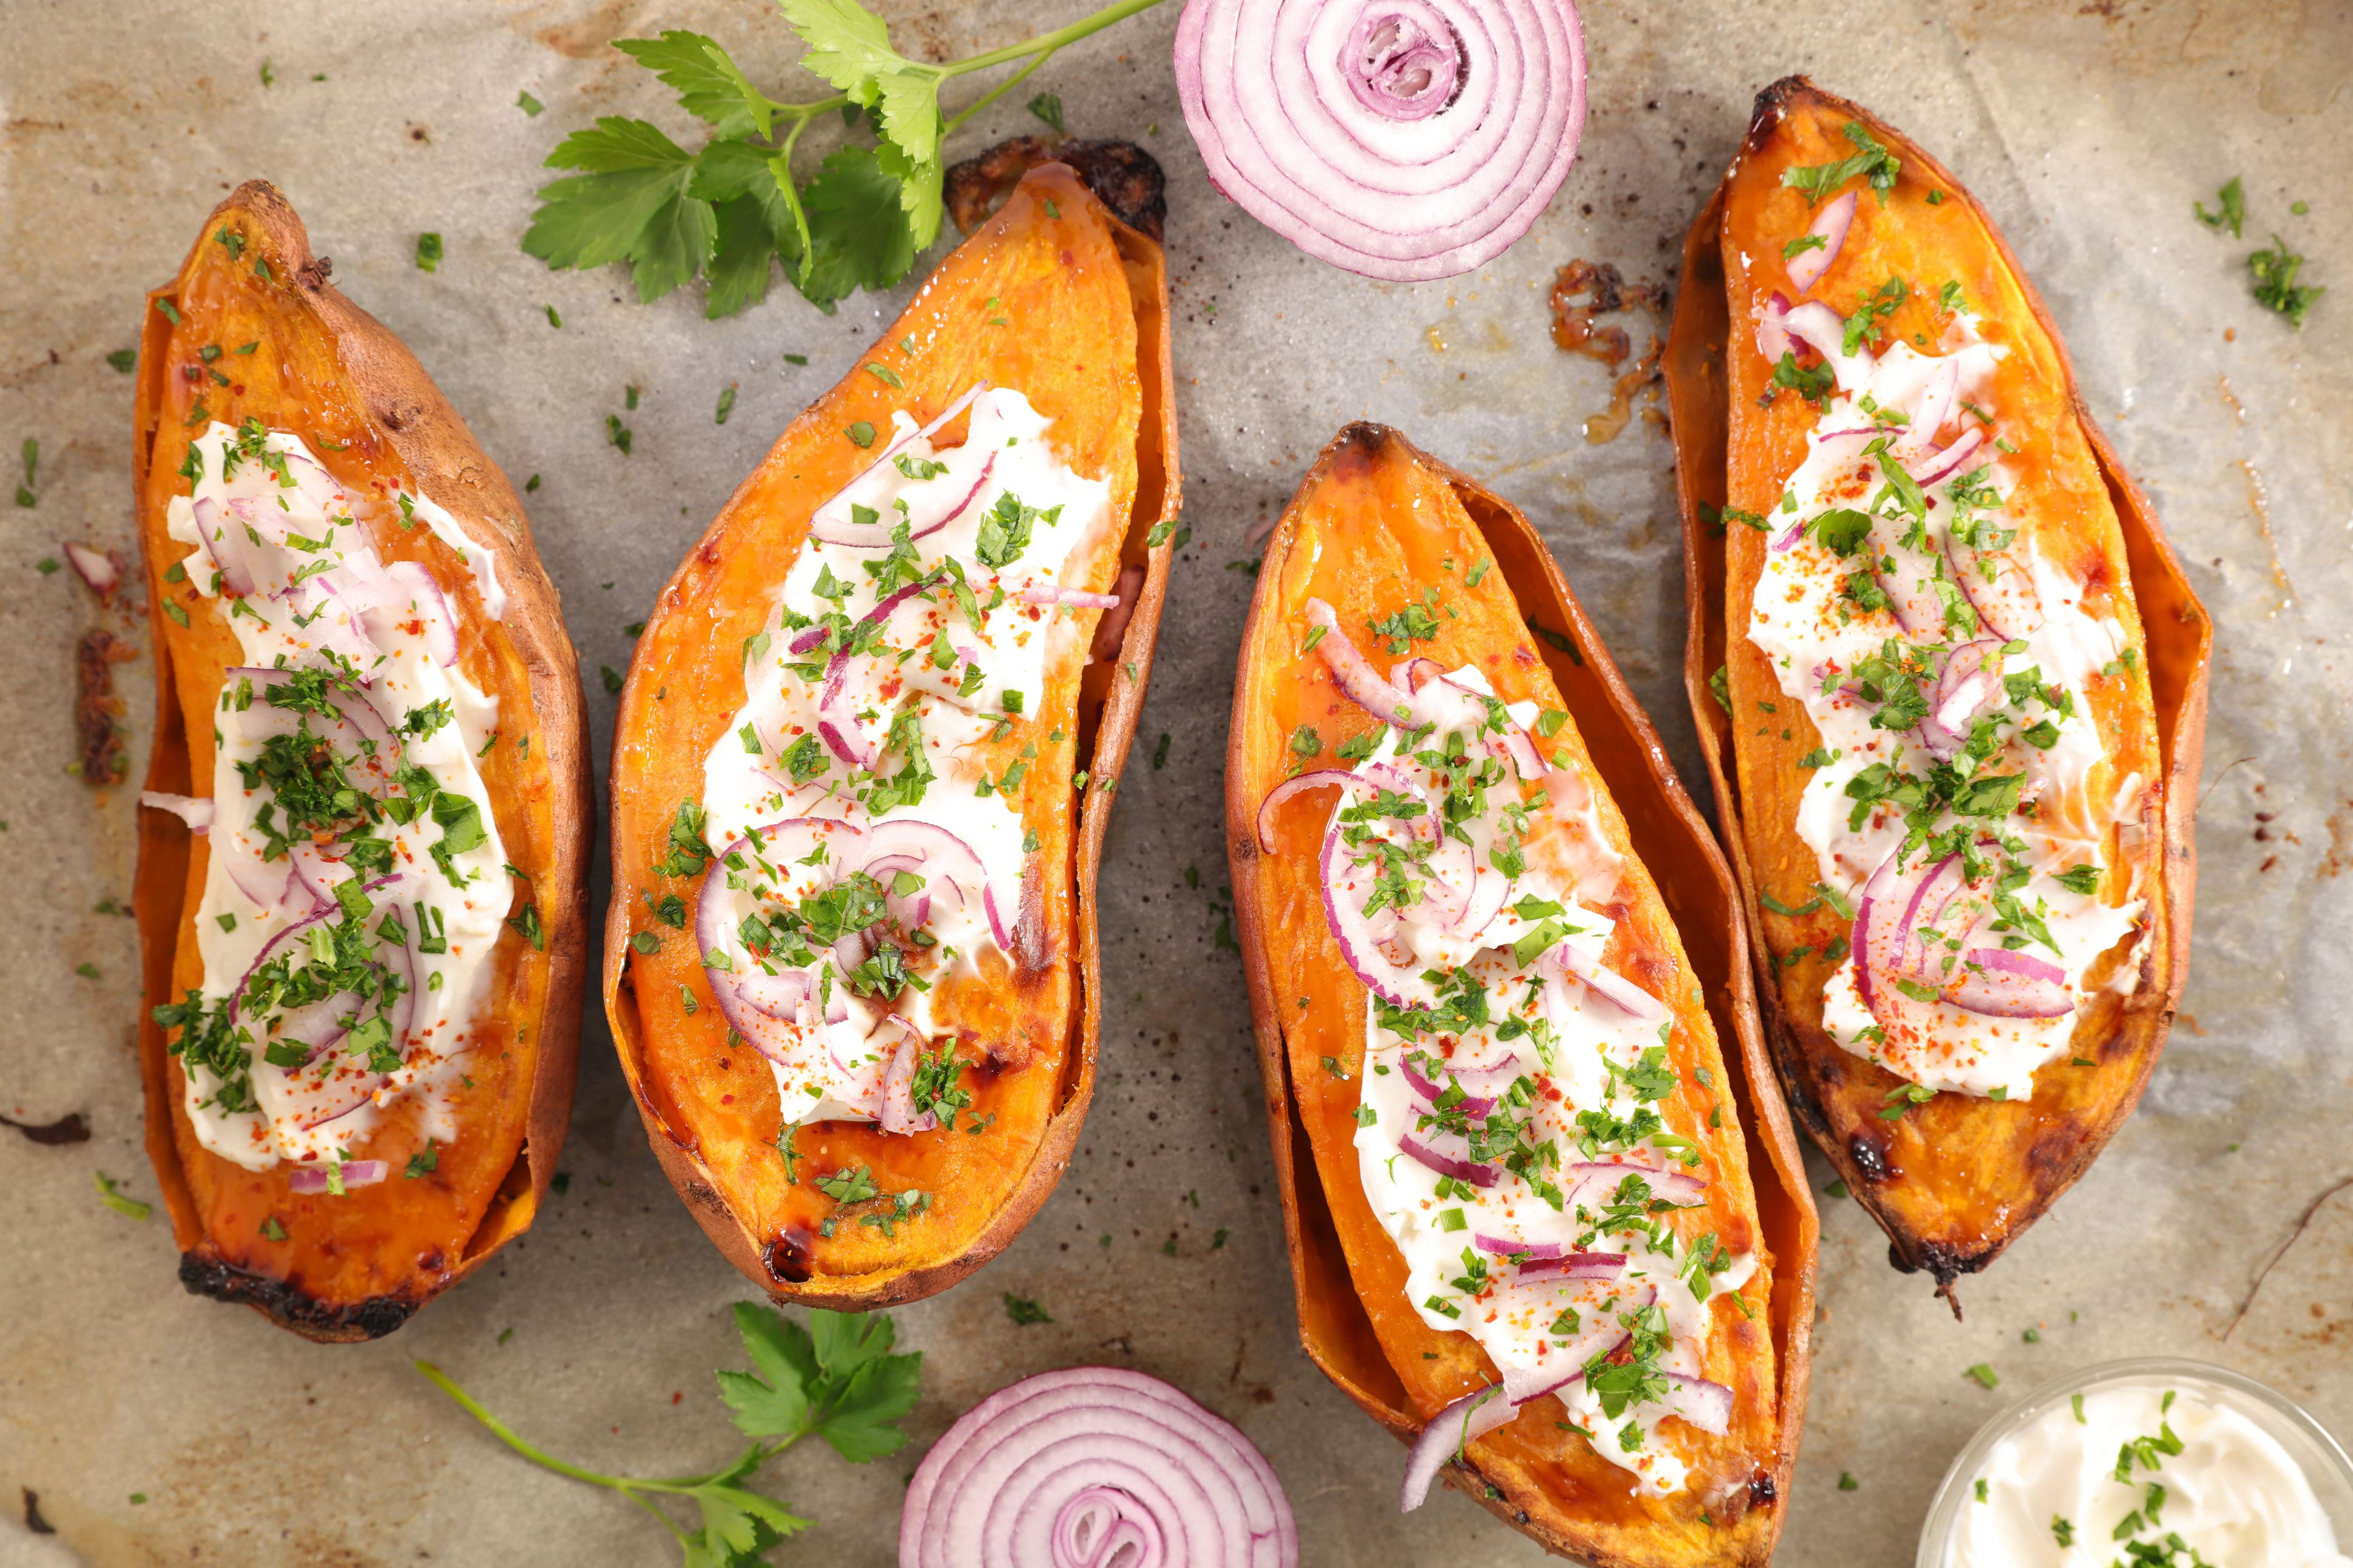 Are Sweet Potatoes Healthy? - Nutrition Facts & Benefits